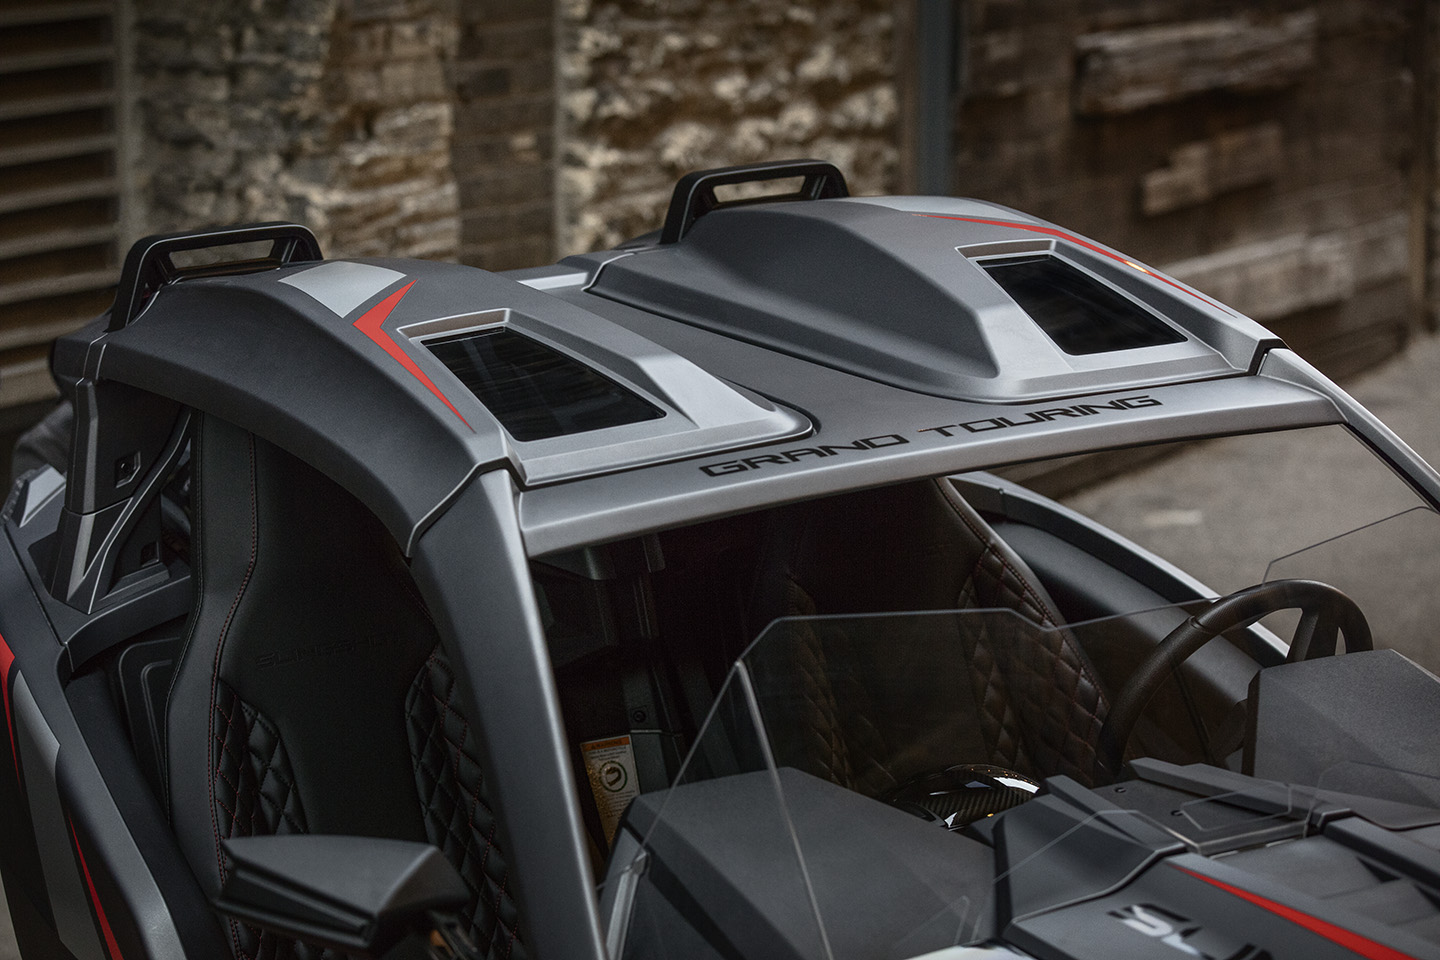 polaris - Polaris Slingshot Roof